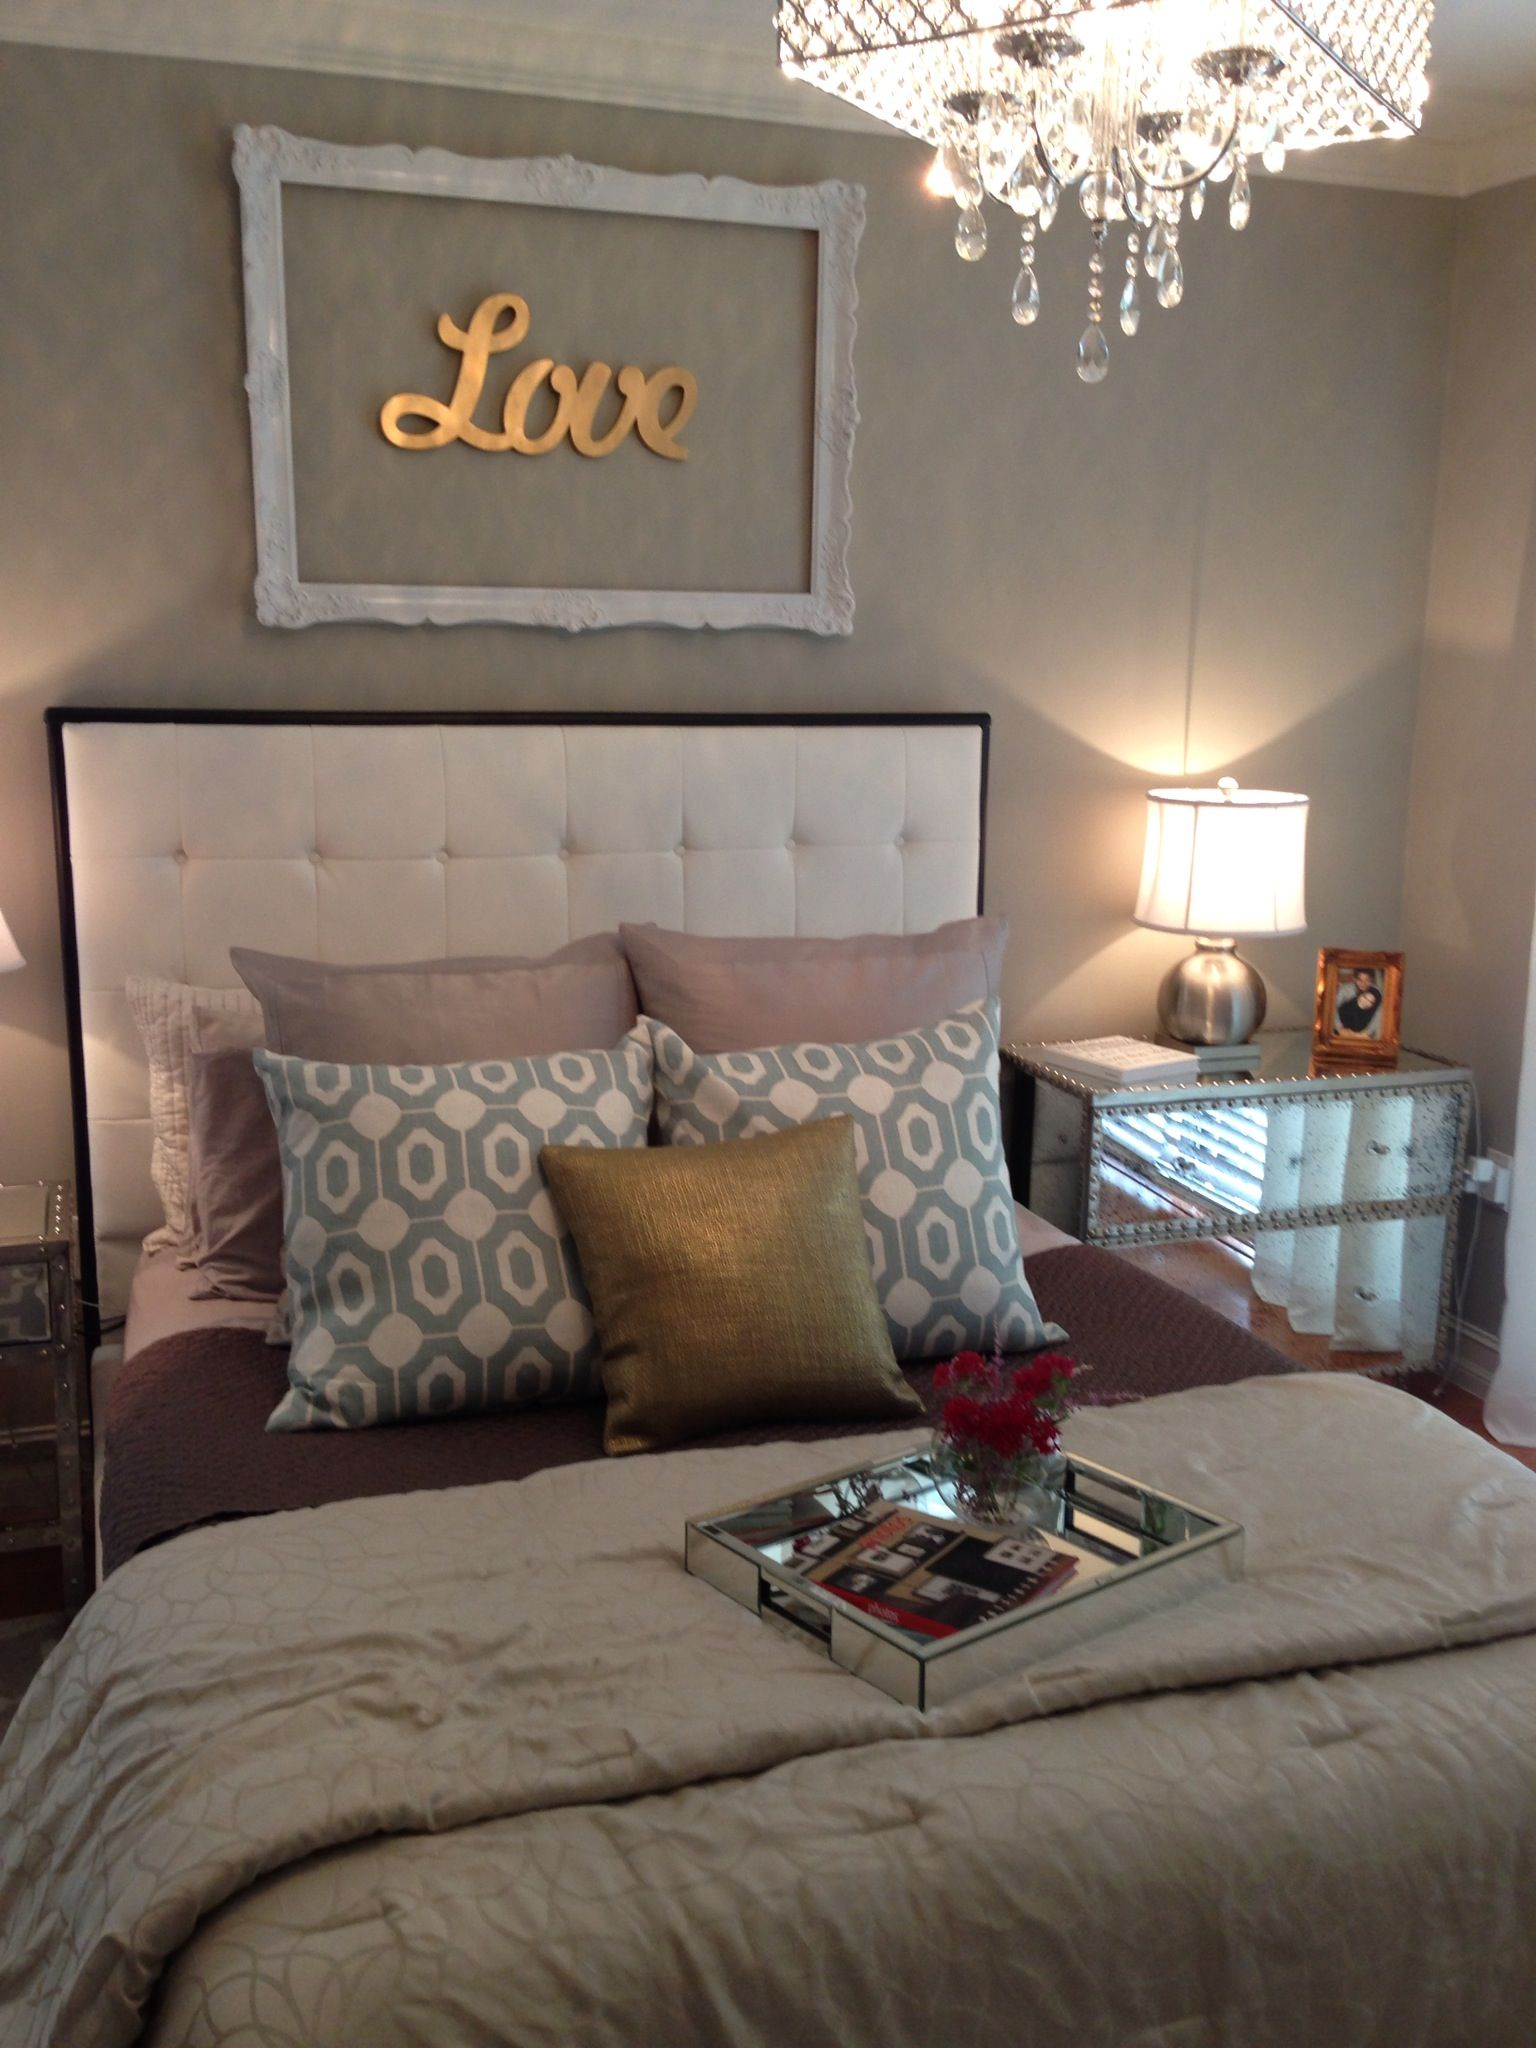 Too many different colors but i love the decor above the bed amber hawkins home decor Gold accessories for living room